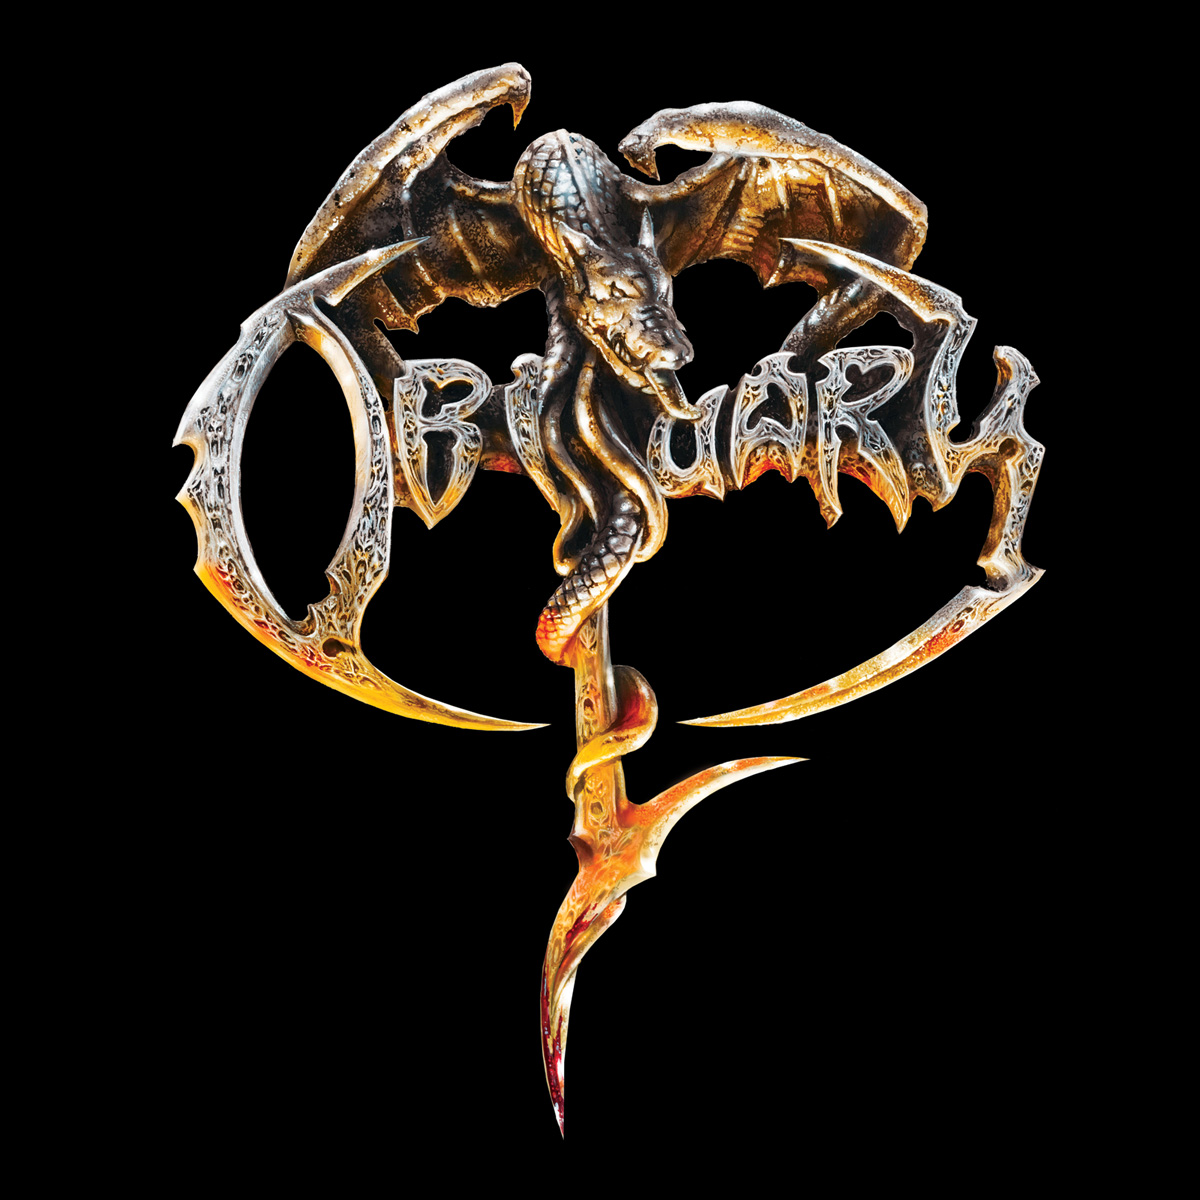 Order The New Album Obituary Now!!!